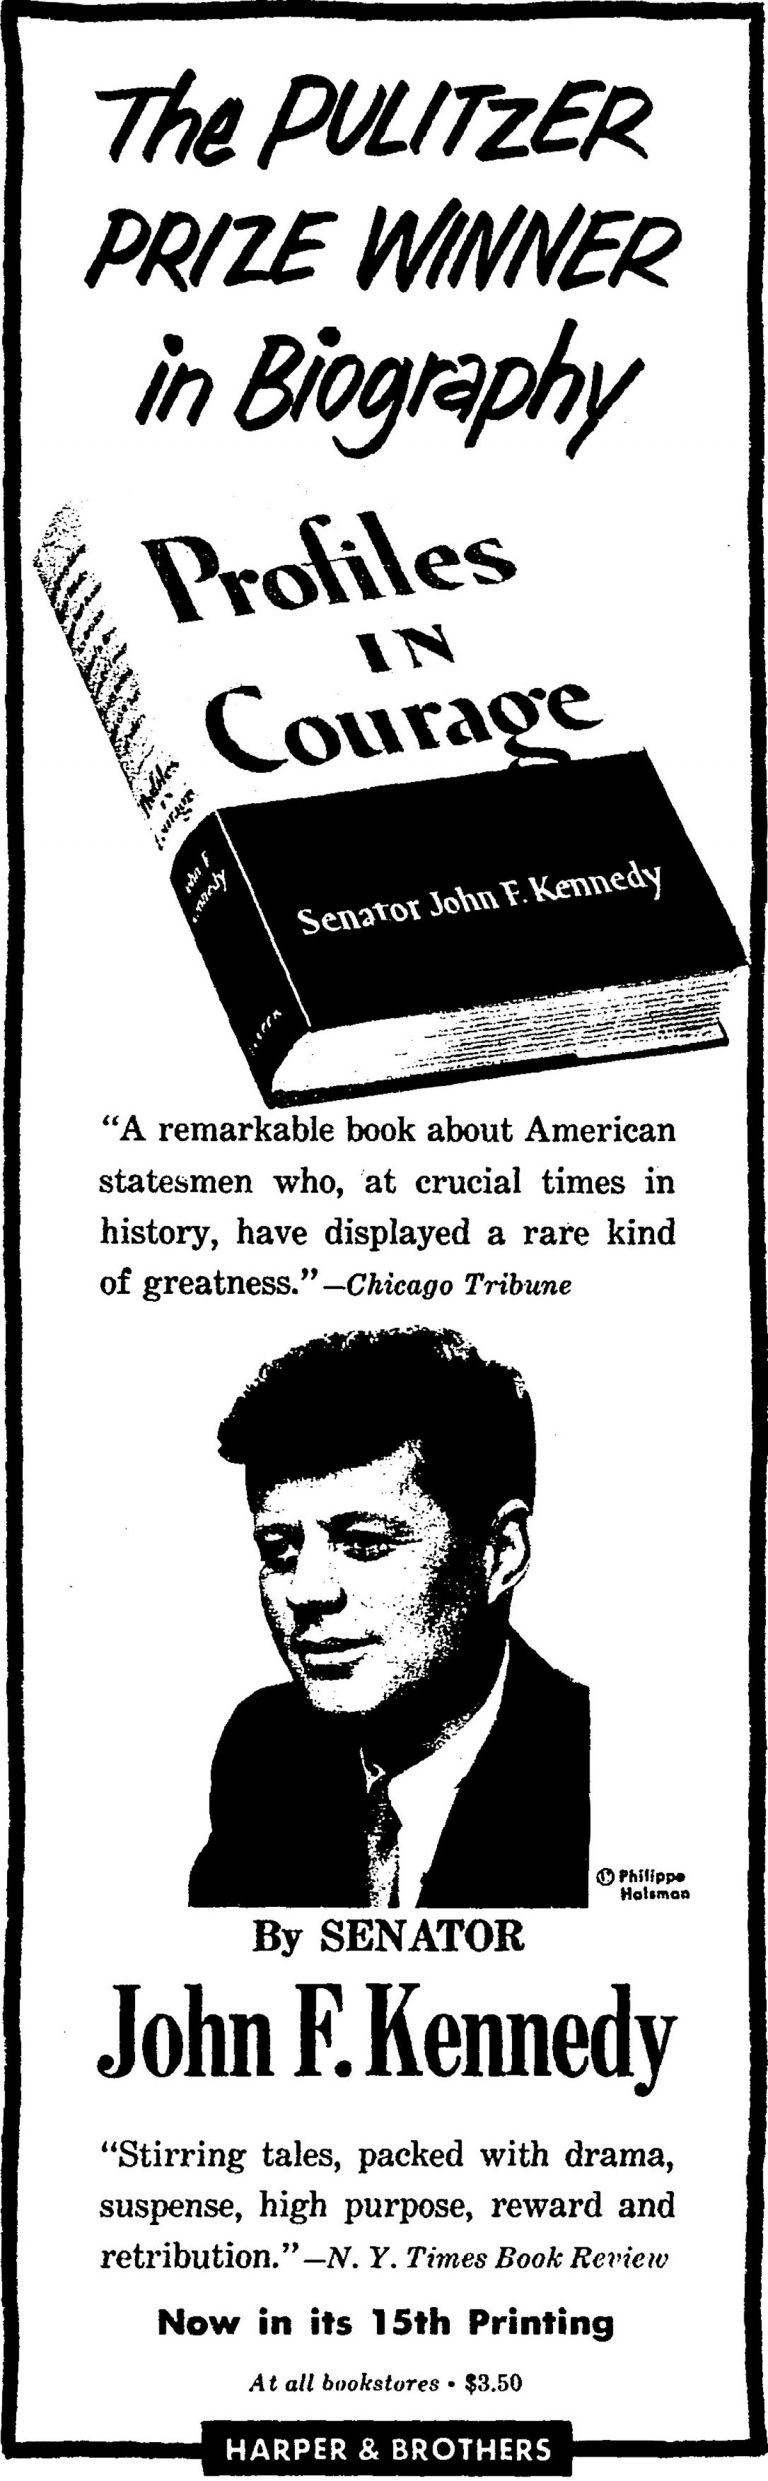 New York Times advertisement for Profiles in Courage from May 19, 1957.